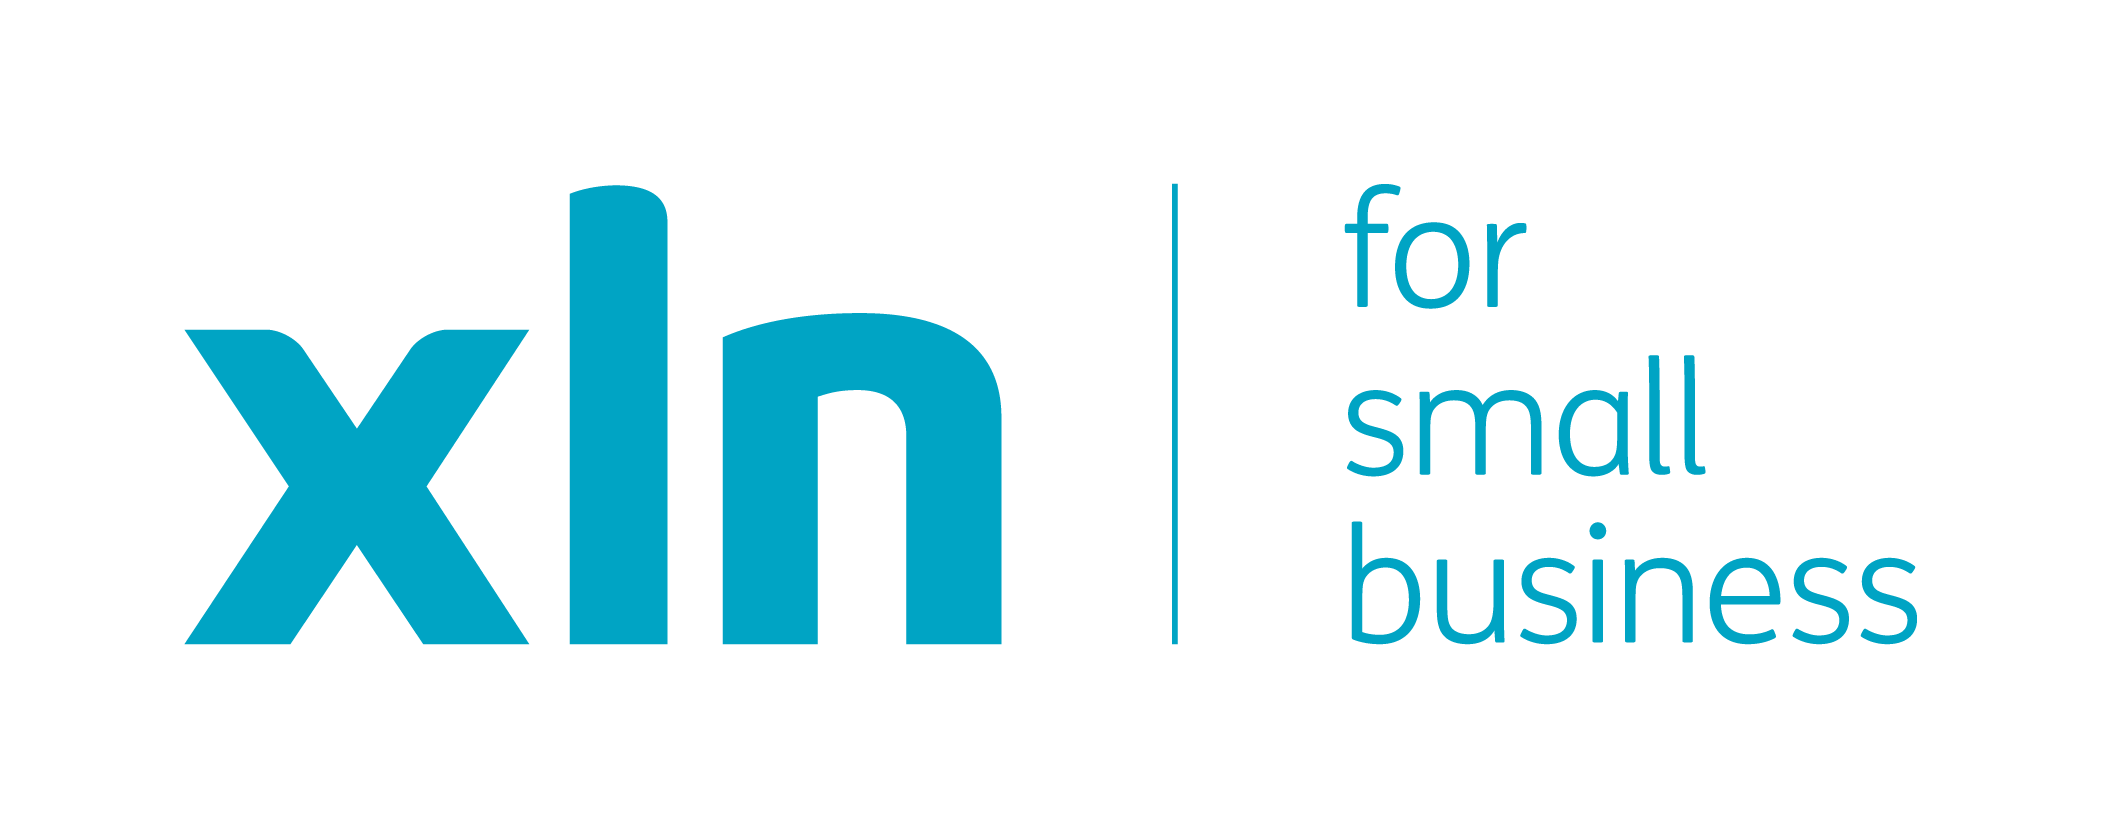 XLN | for small business